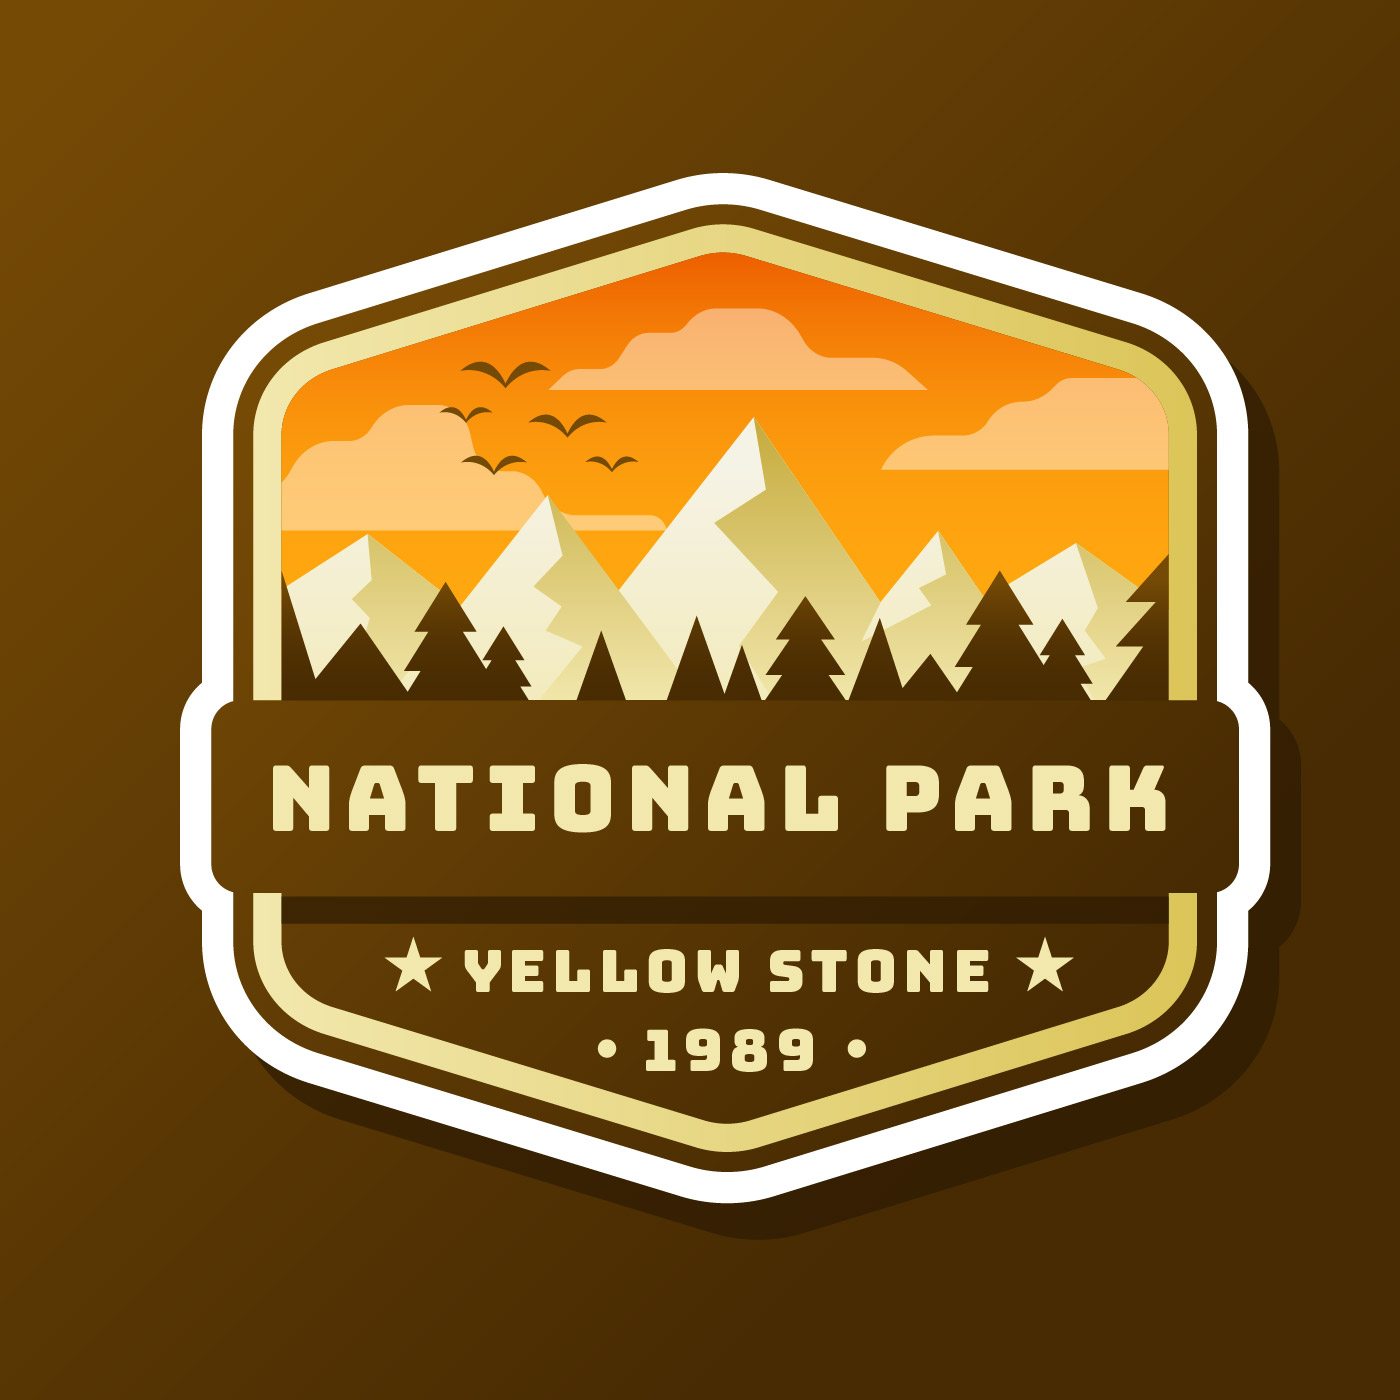 National Park Patch Design Download Free Vectors Clipart Graphics Vector Art